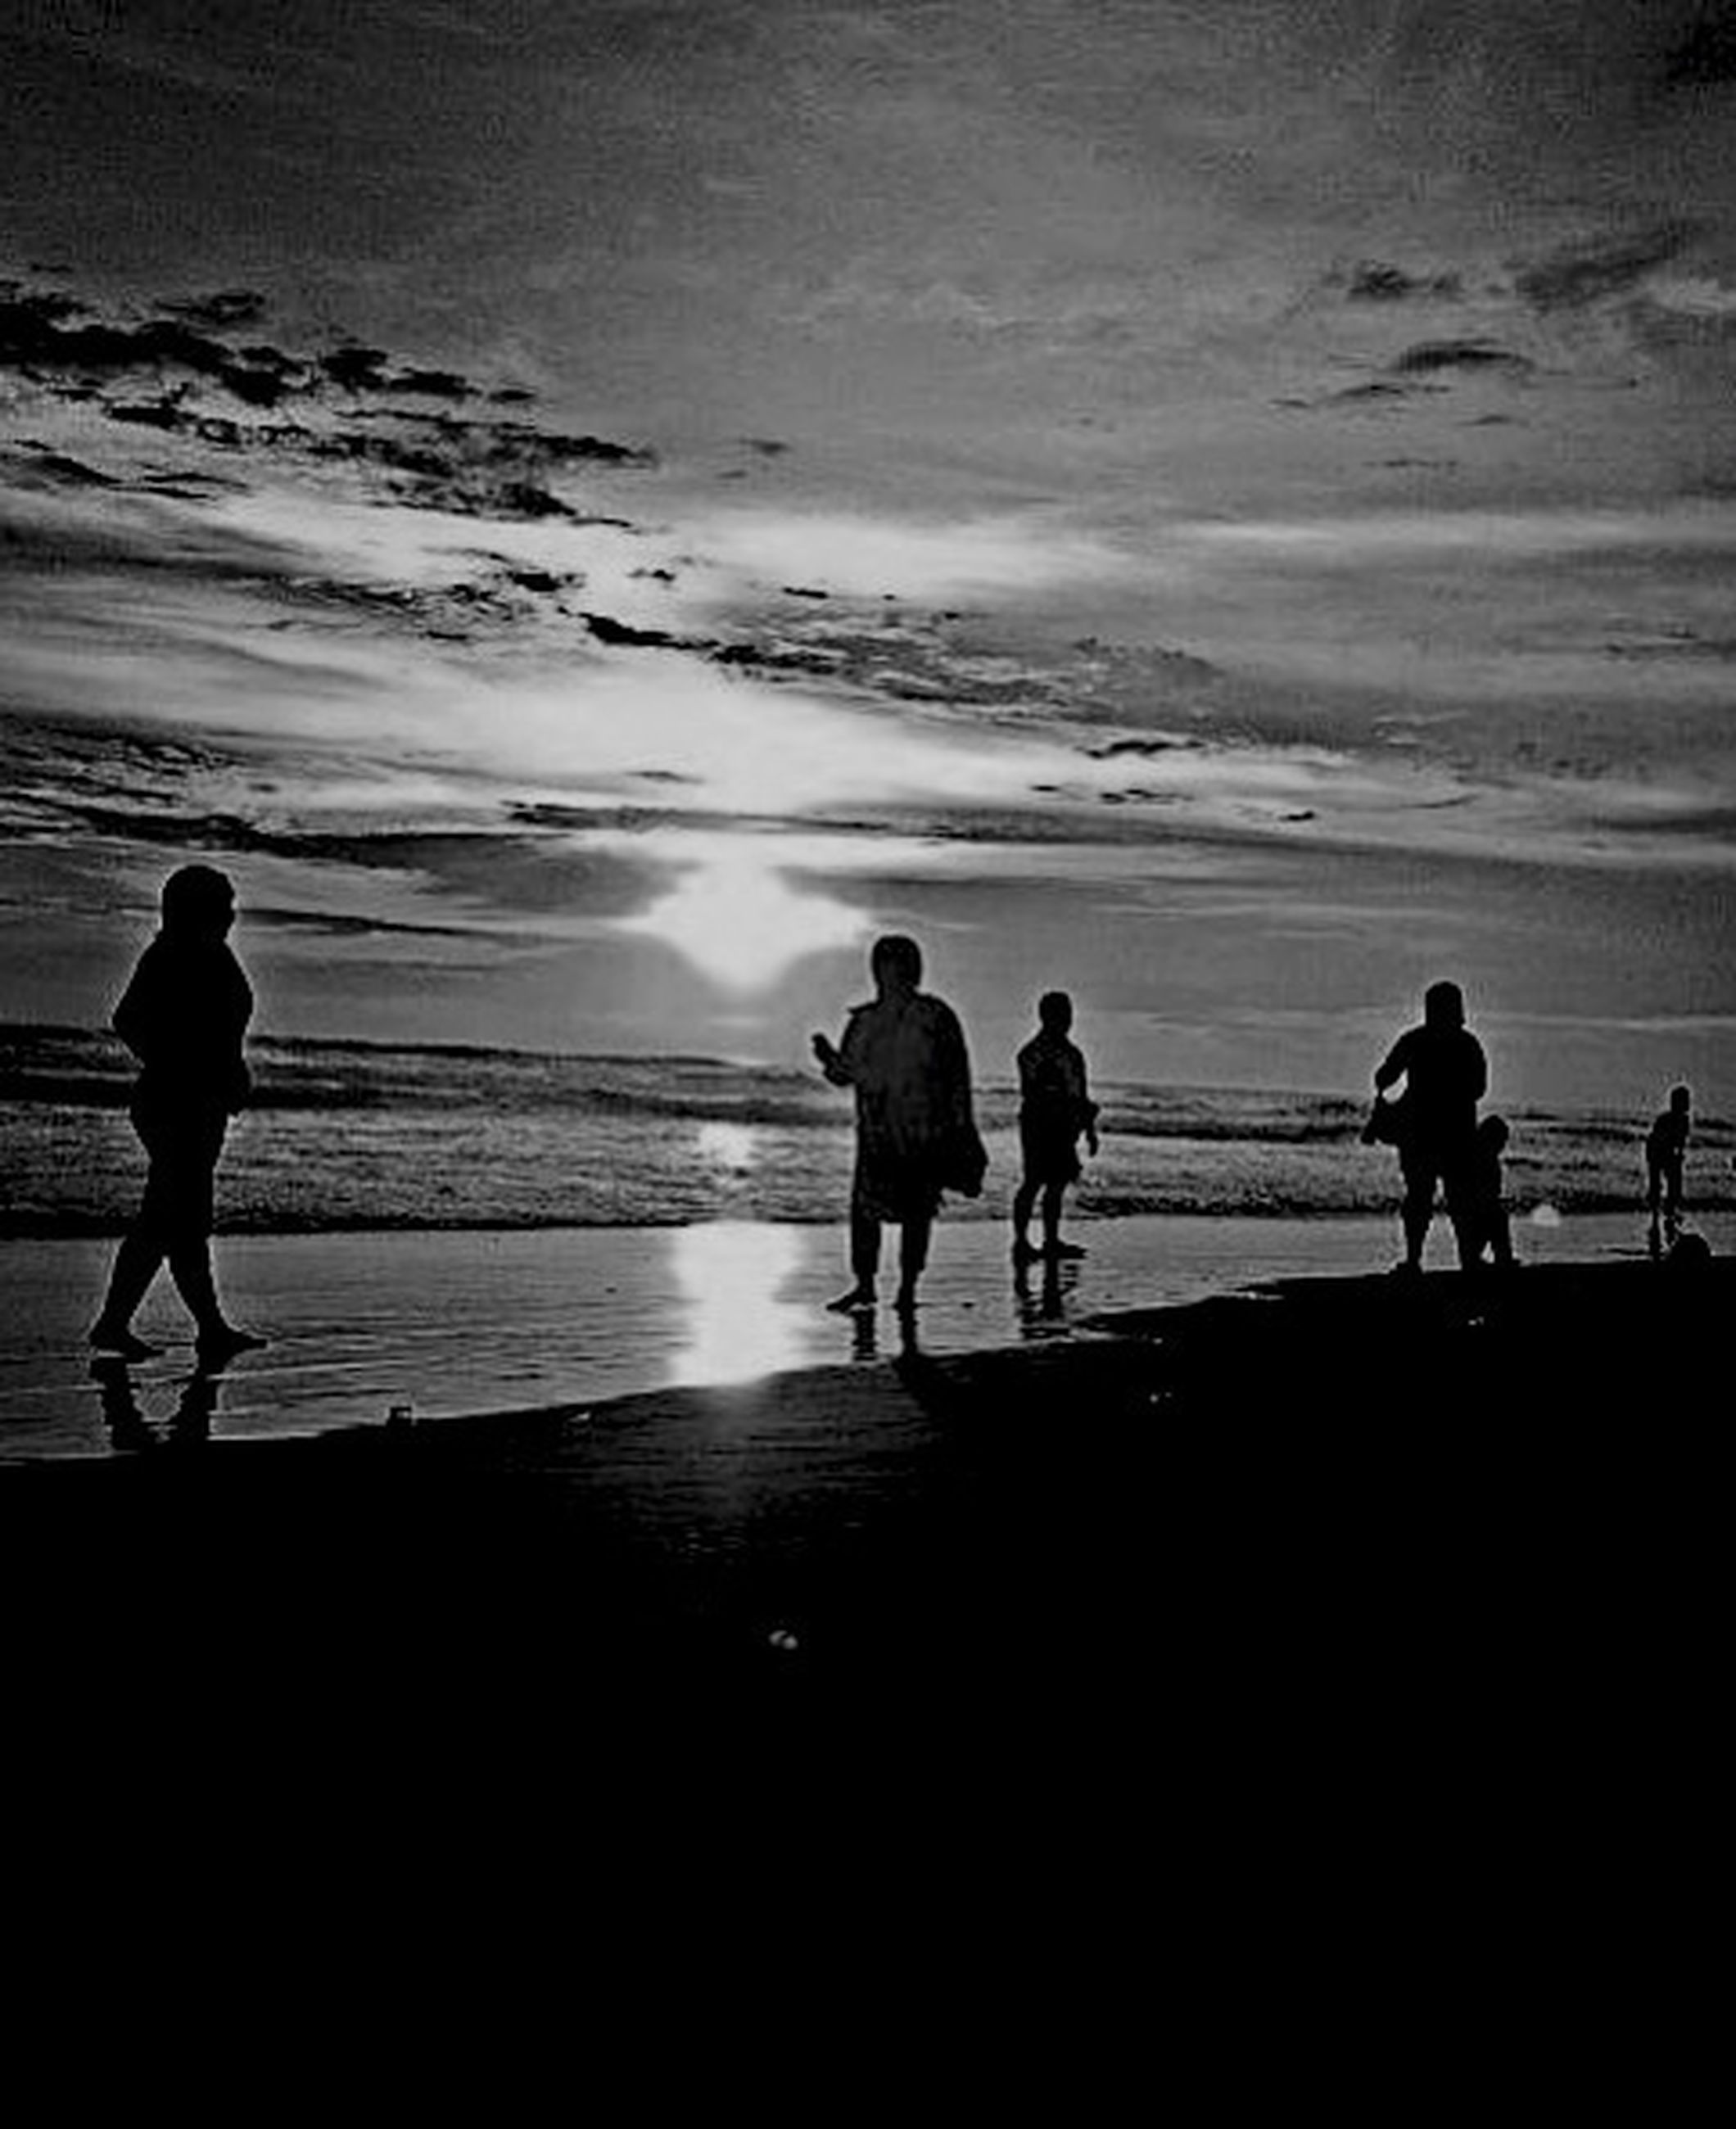 silhouette, sea, beach, water, men, togetherness, lifestyles, full length, horizon over water, walking, shore, leisure activity, sky, sunset, standing, person, bonding, vacations